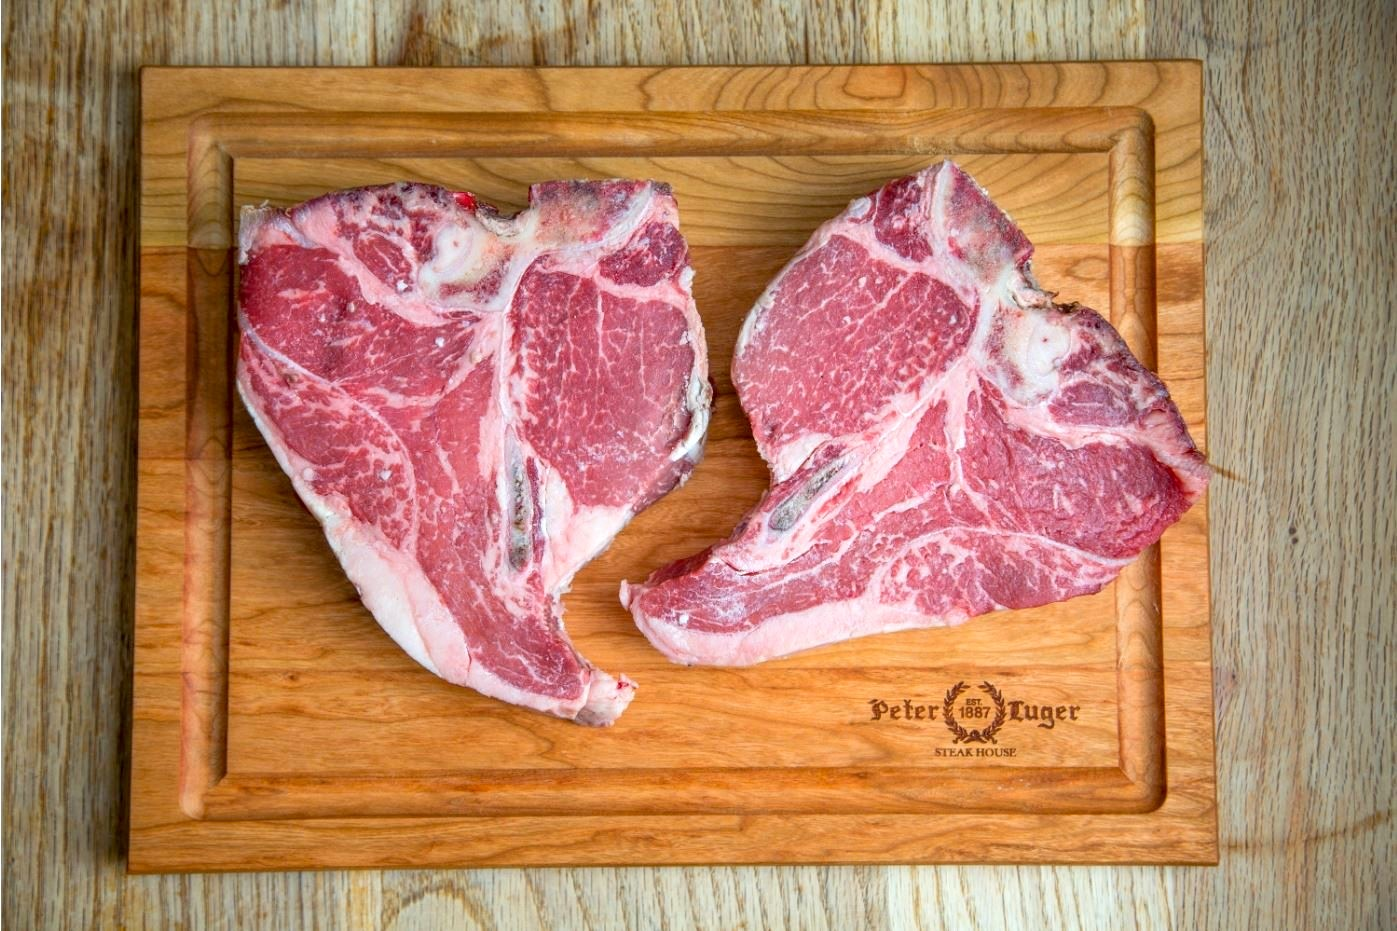 Best NYC food delivery gifts: Steaks from Peter Luger. Just prepare for sticker shock!